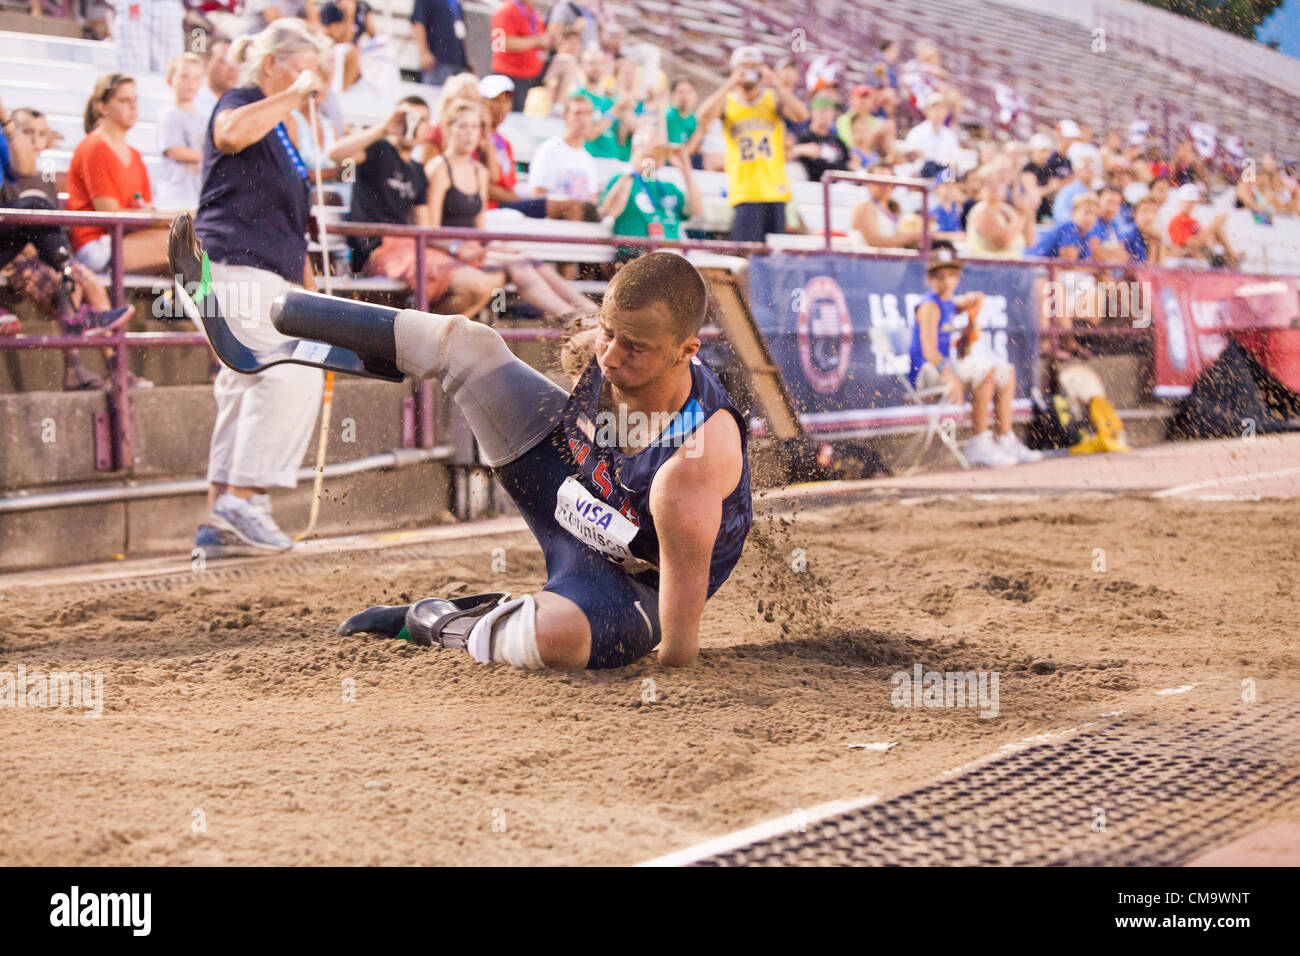 Indianapolis, IN, USA, June 30, 2012.  Joshua Kennison, a quadruple amputee, competes in the long jump at the 2012 - Stock Image